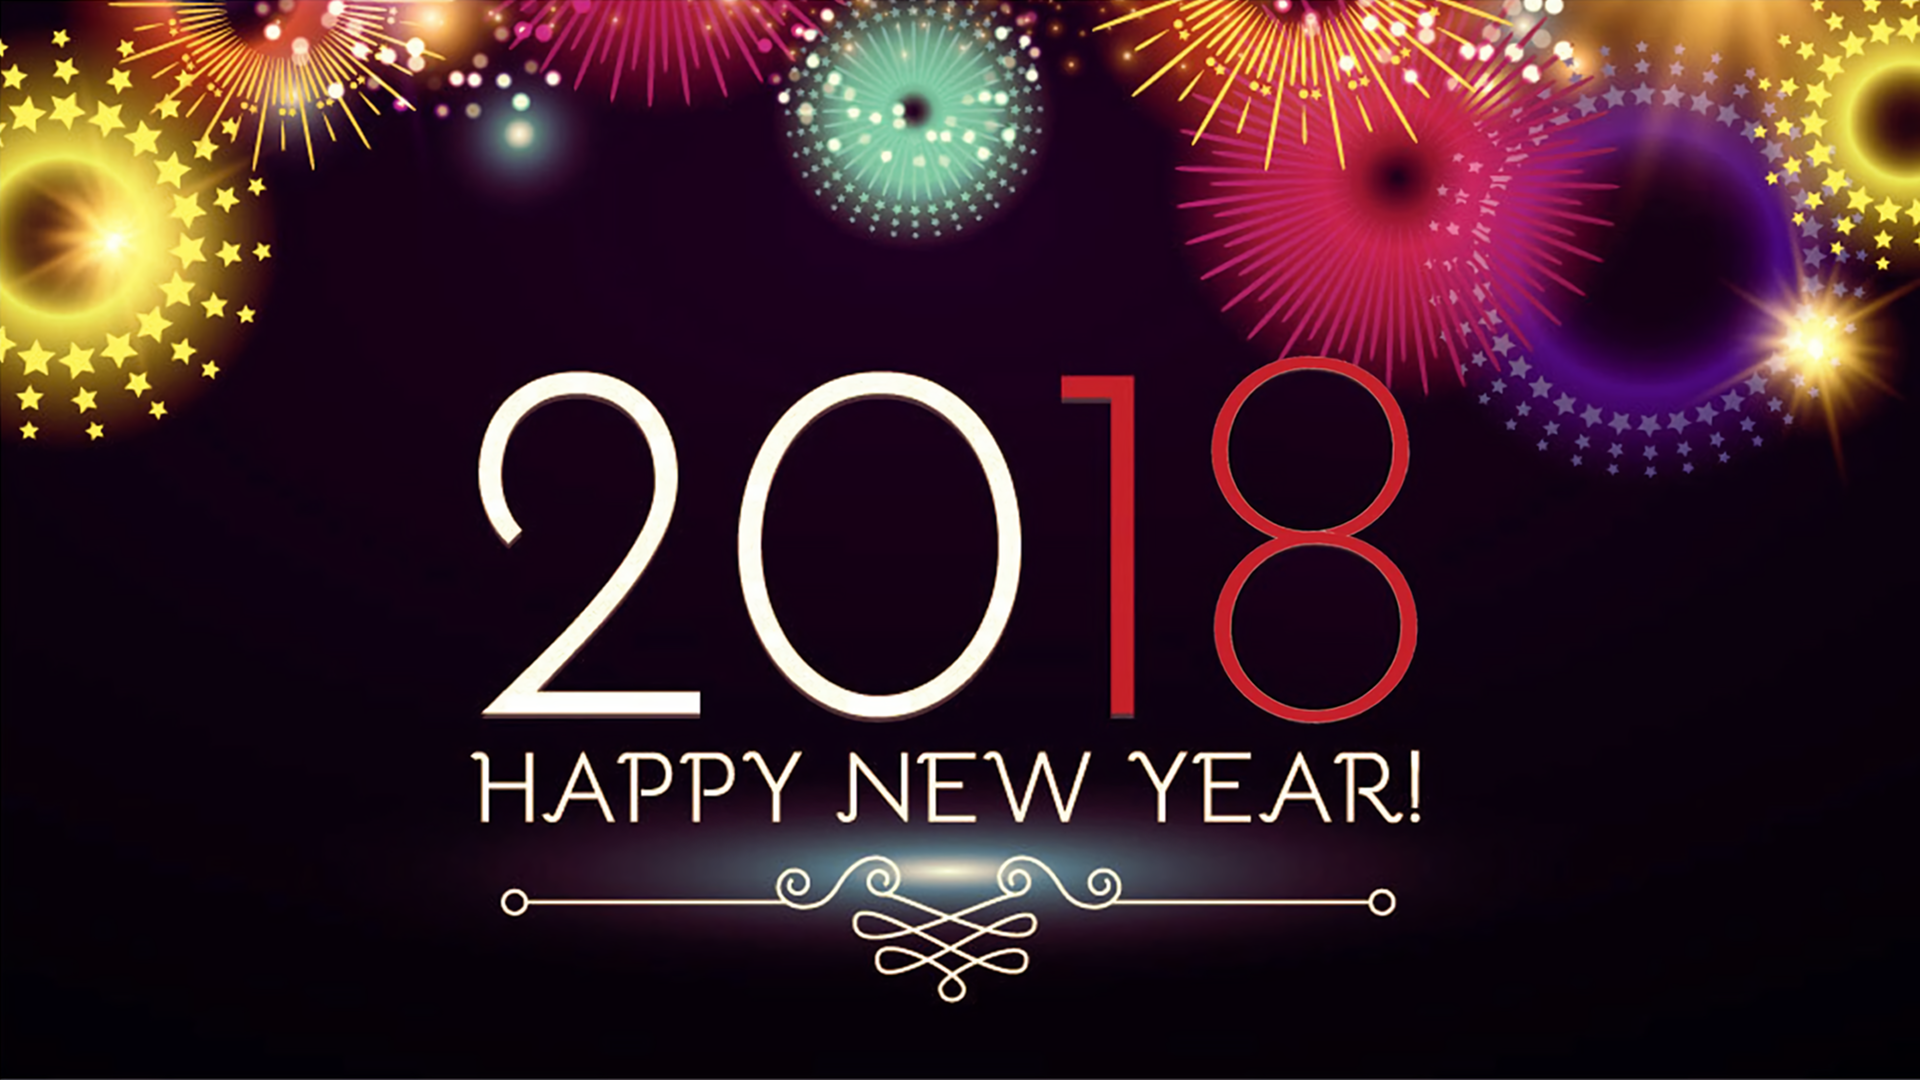 new year 2018 wallpapers id882478